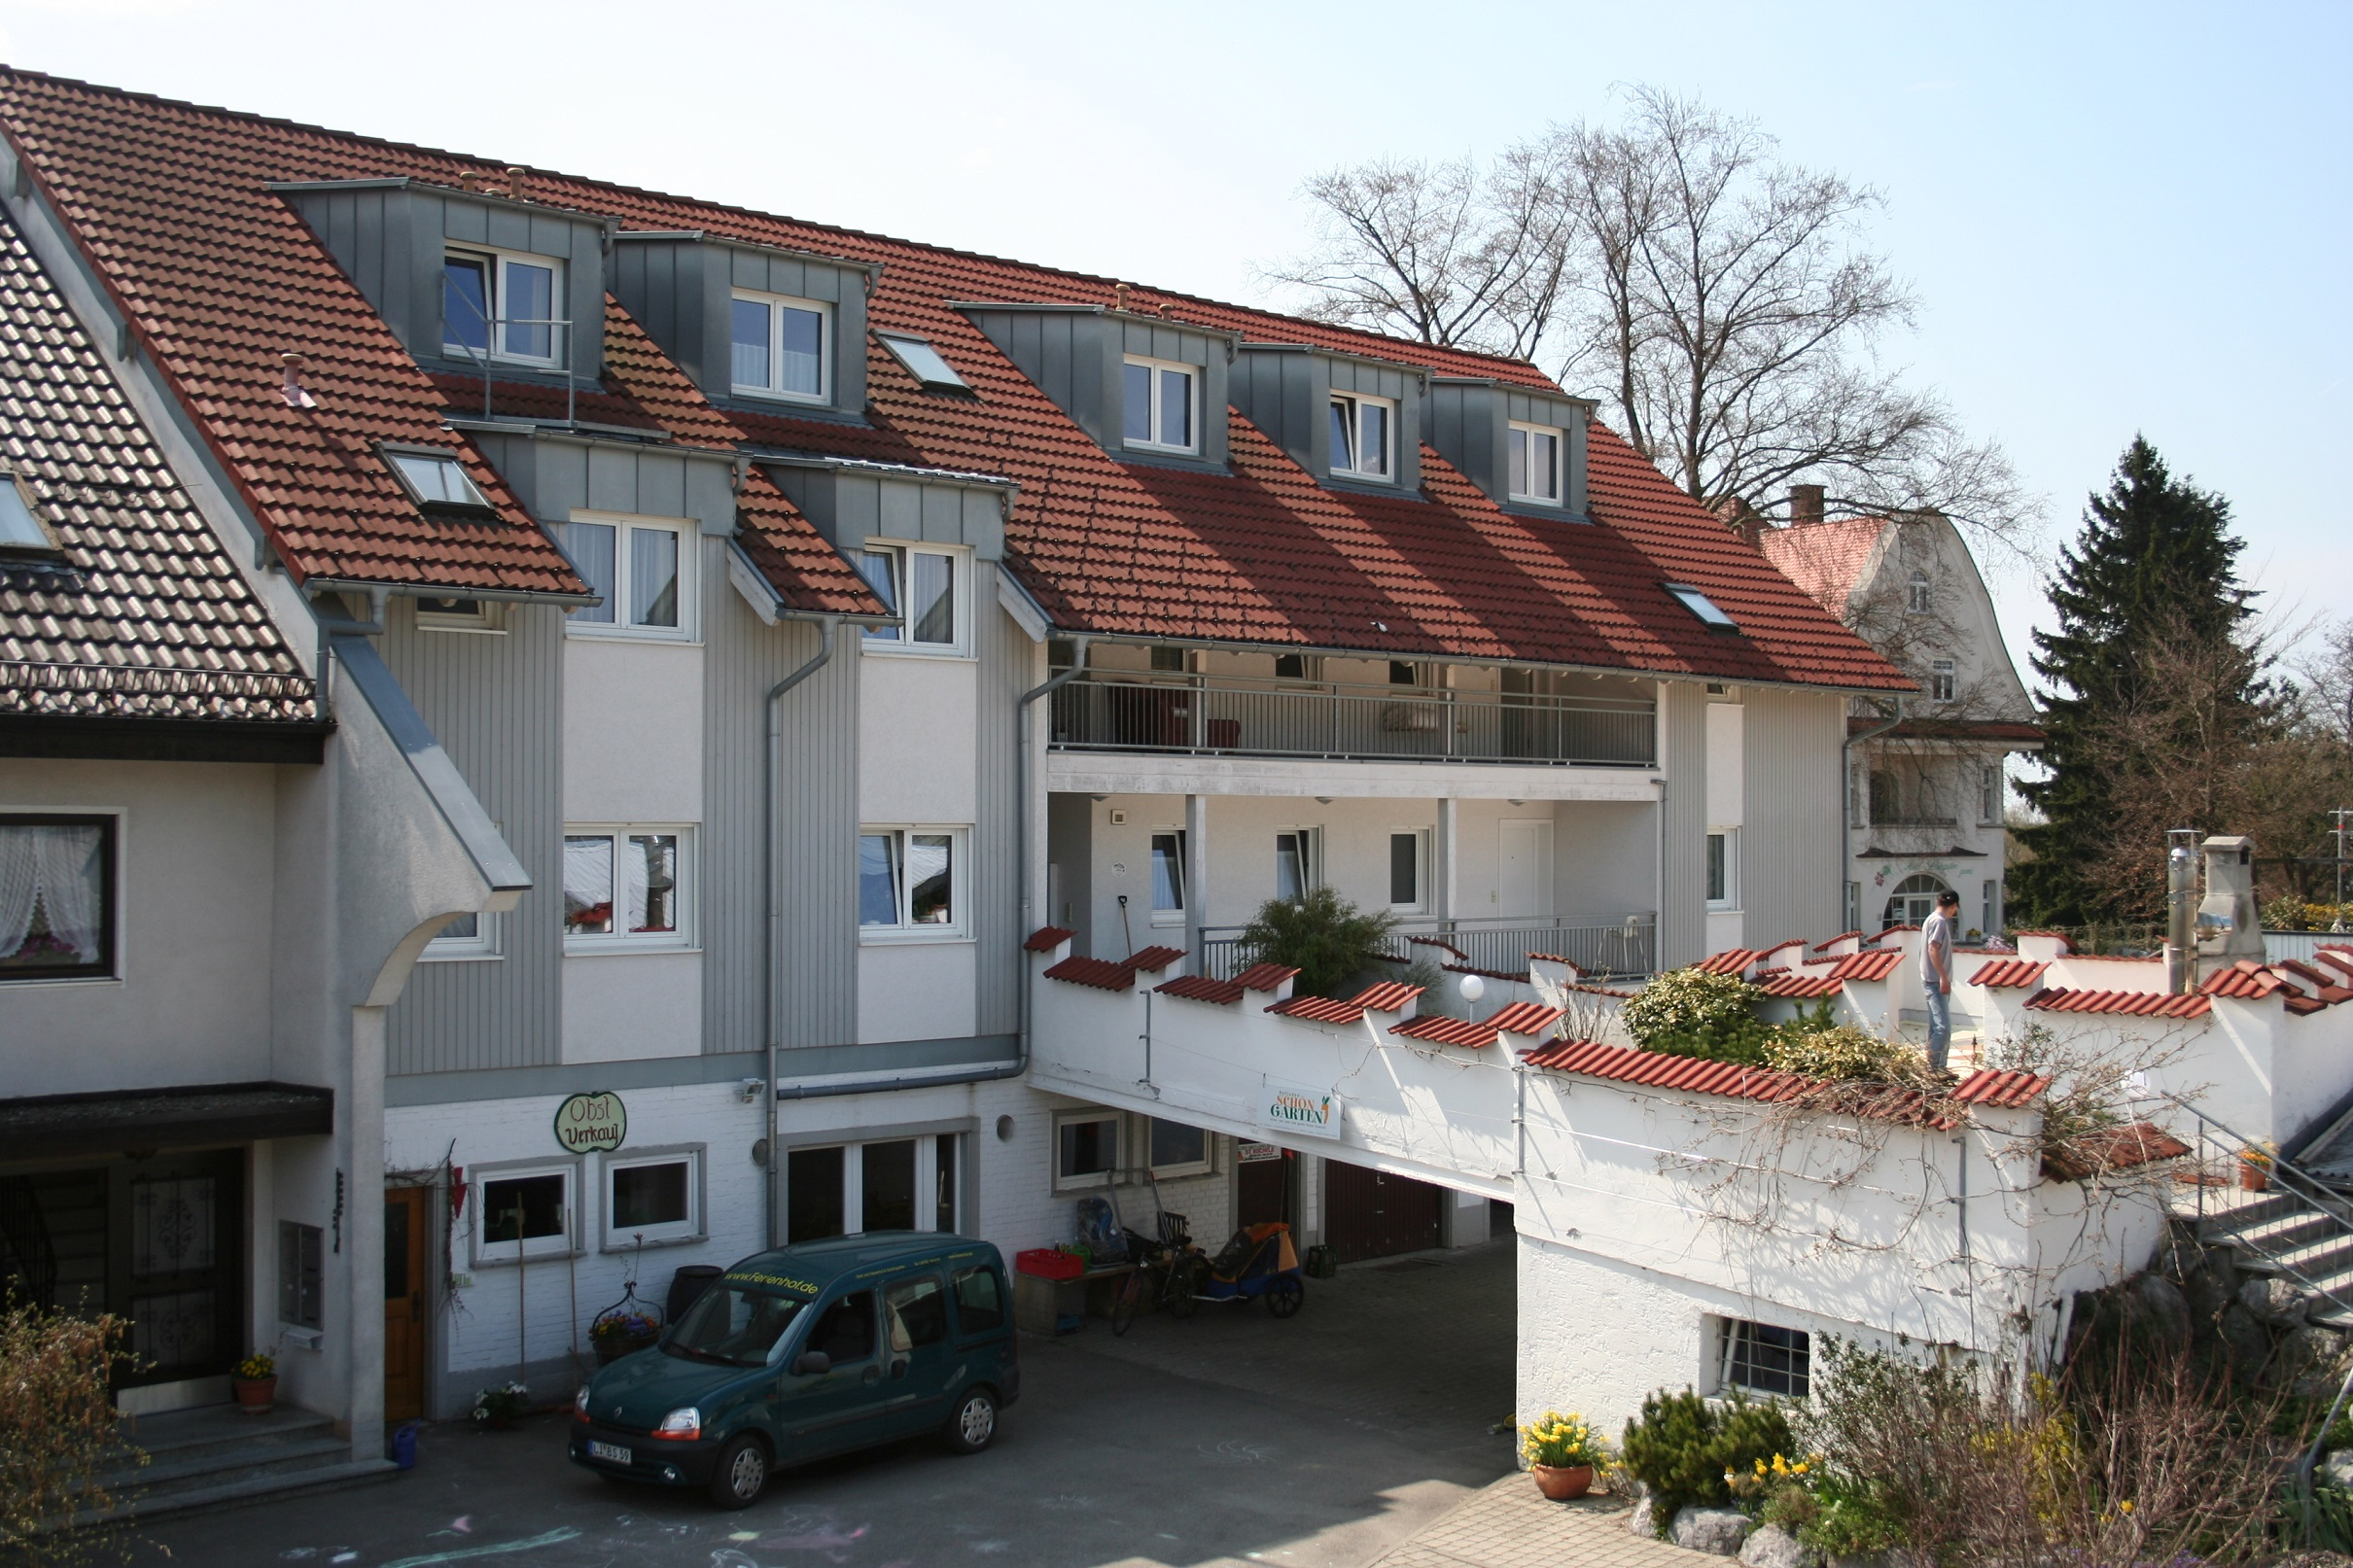 Holiday apartment in lindau am bodensee germany bio for Bodensee apartment